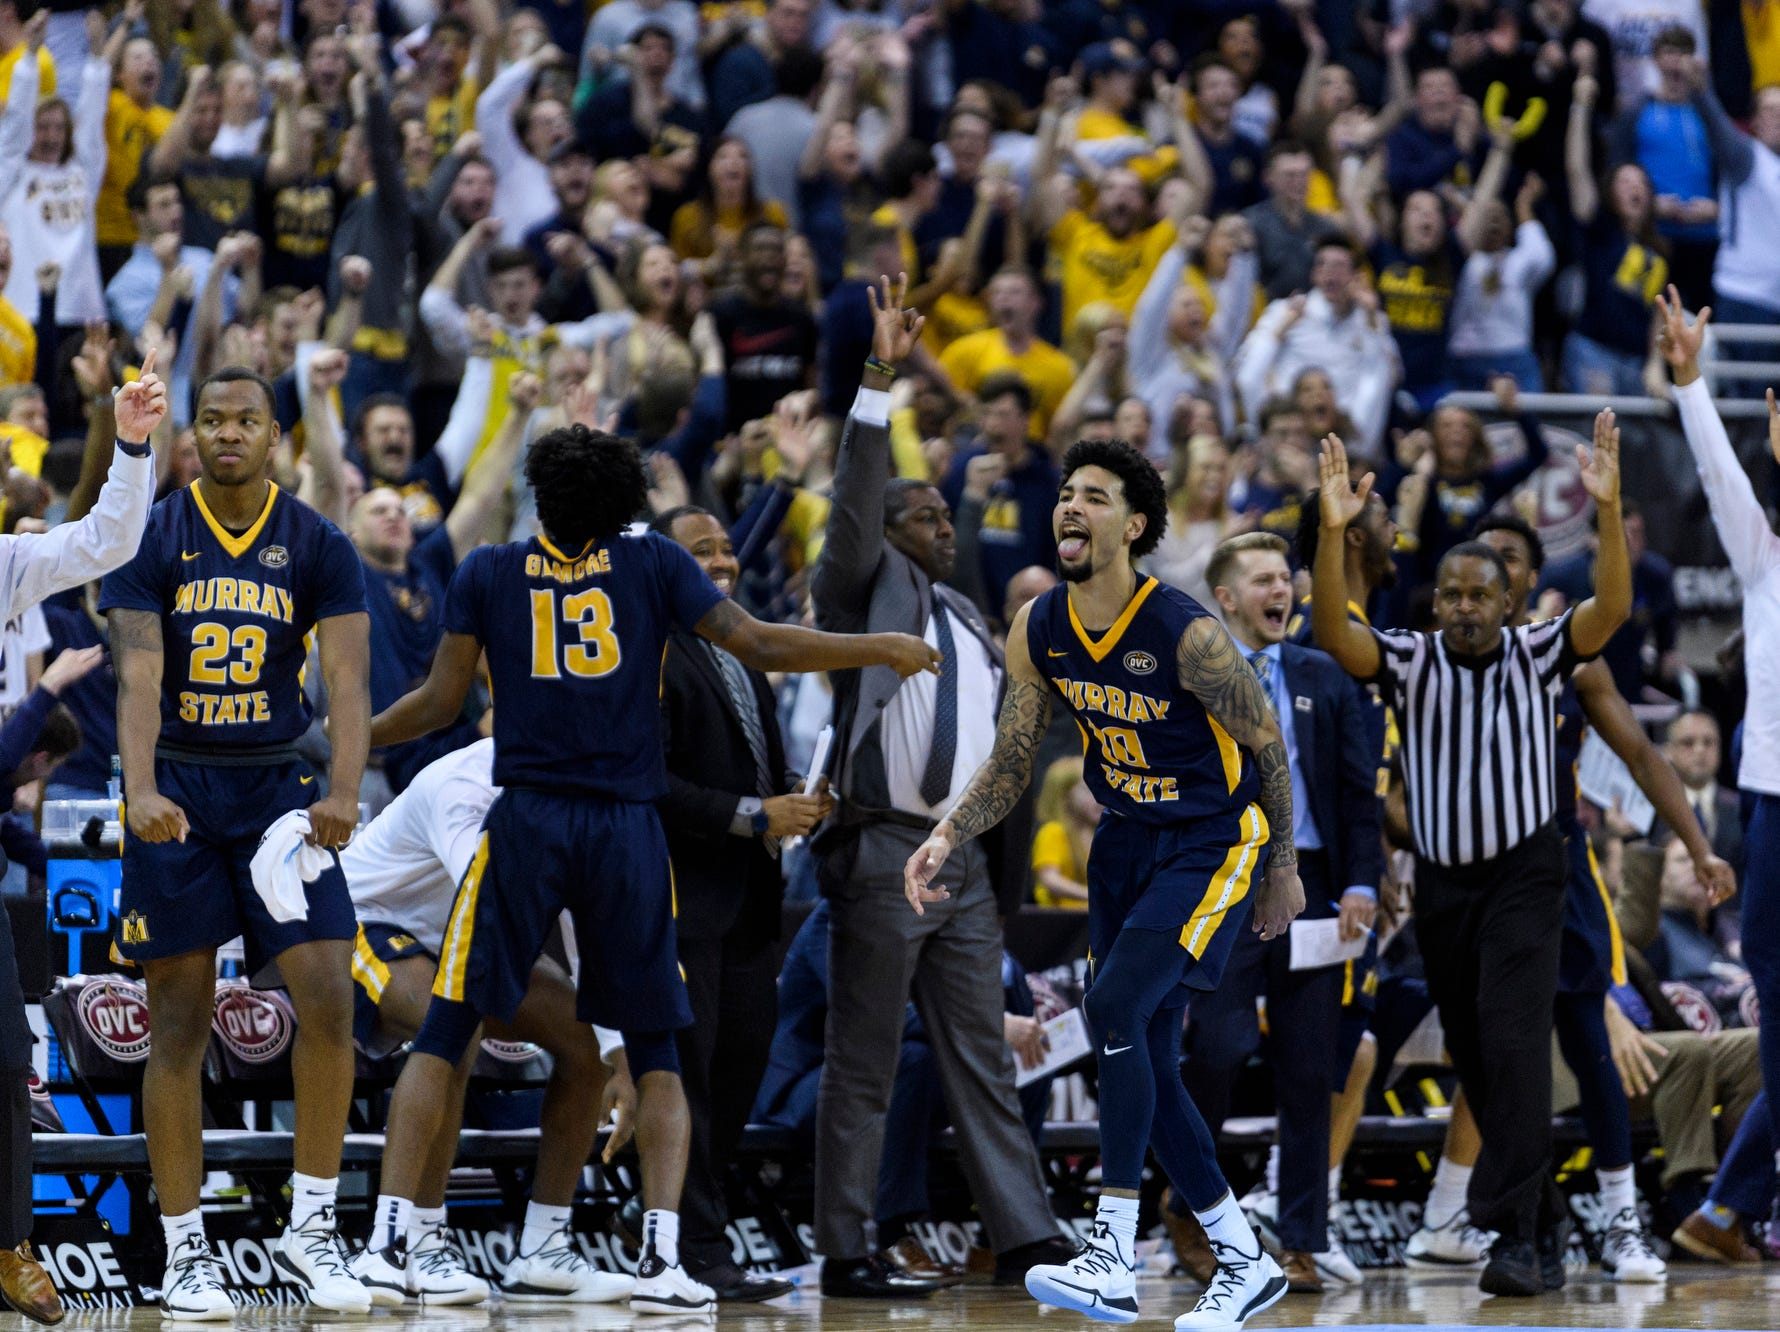 Murray State's Tevin Brown (10) and the rest of the Murray State University Racers cheer as they strengthen their lead over the Belmont University Bruins in the Ohio Valley Conference men's basketball championship at Ford Center in Evansville, Ind., Saturday, March 9, 2019. The Racers earned the OVC men's championship title after defeating the Bruins, 77-65.